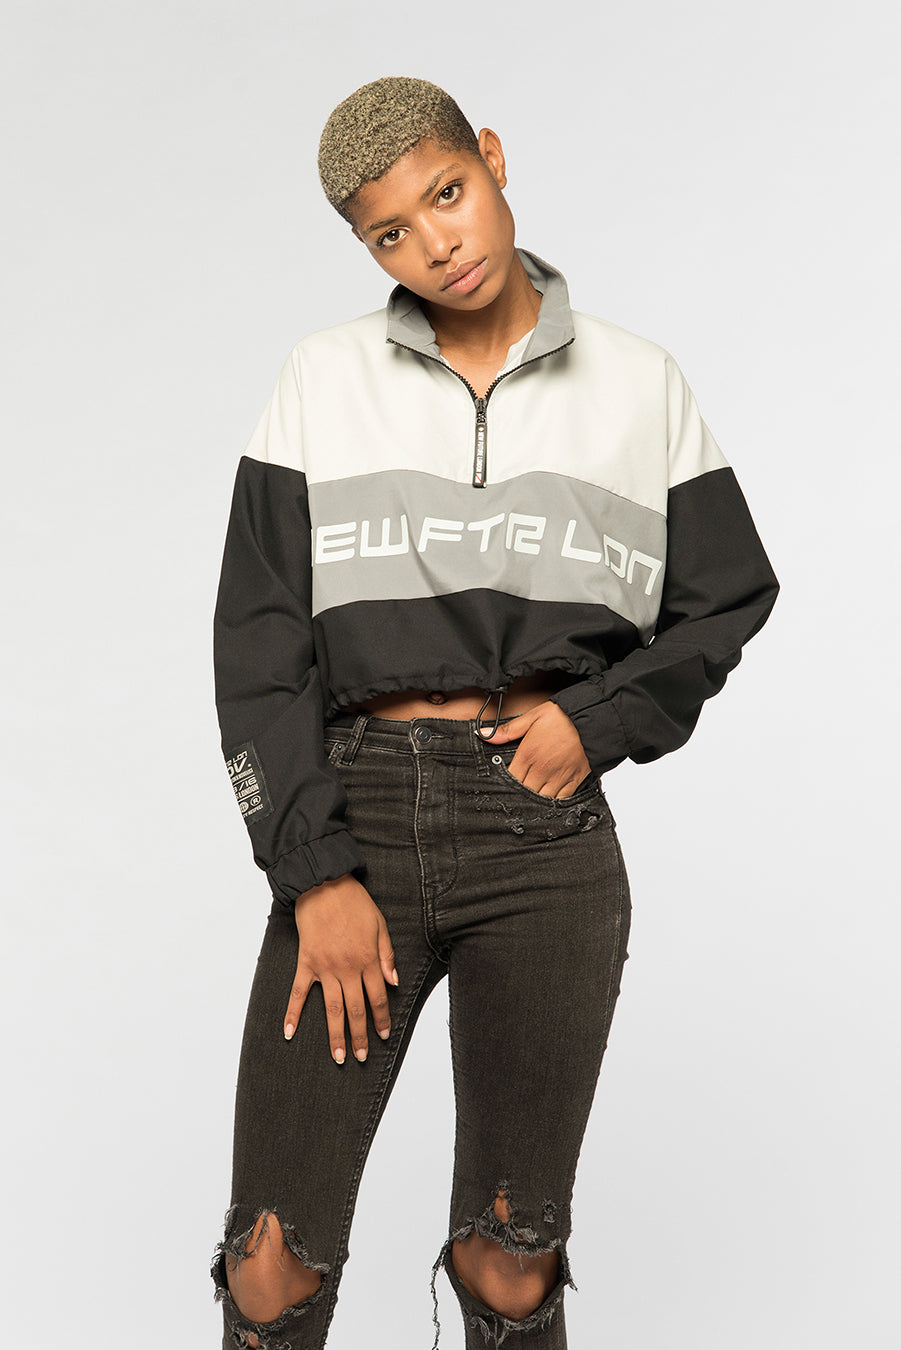 new_future_london_fam_cropped_windbreaker_2-1.jpg